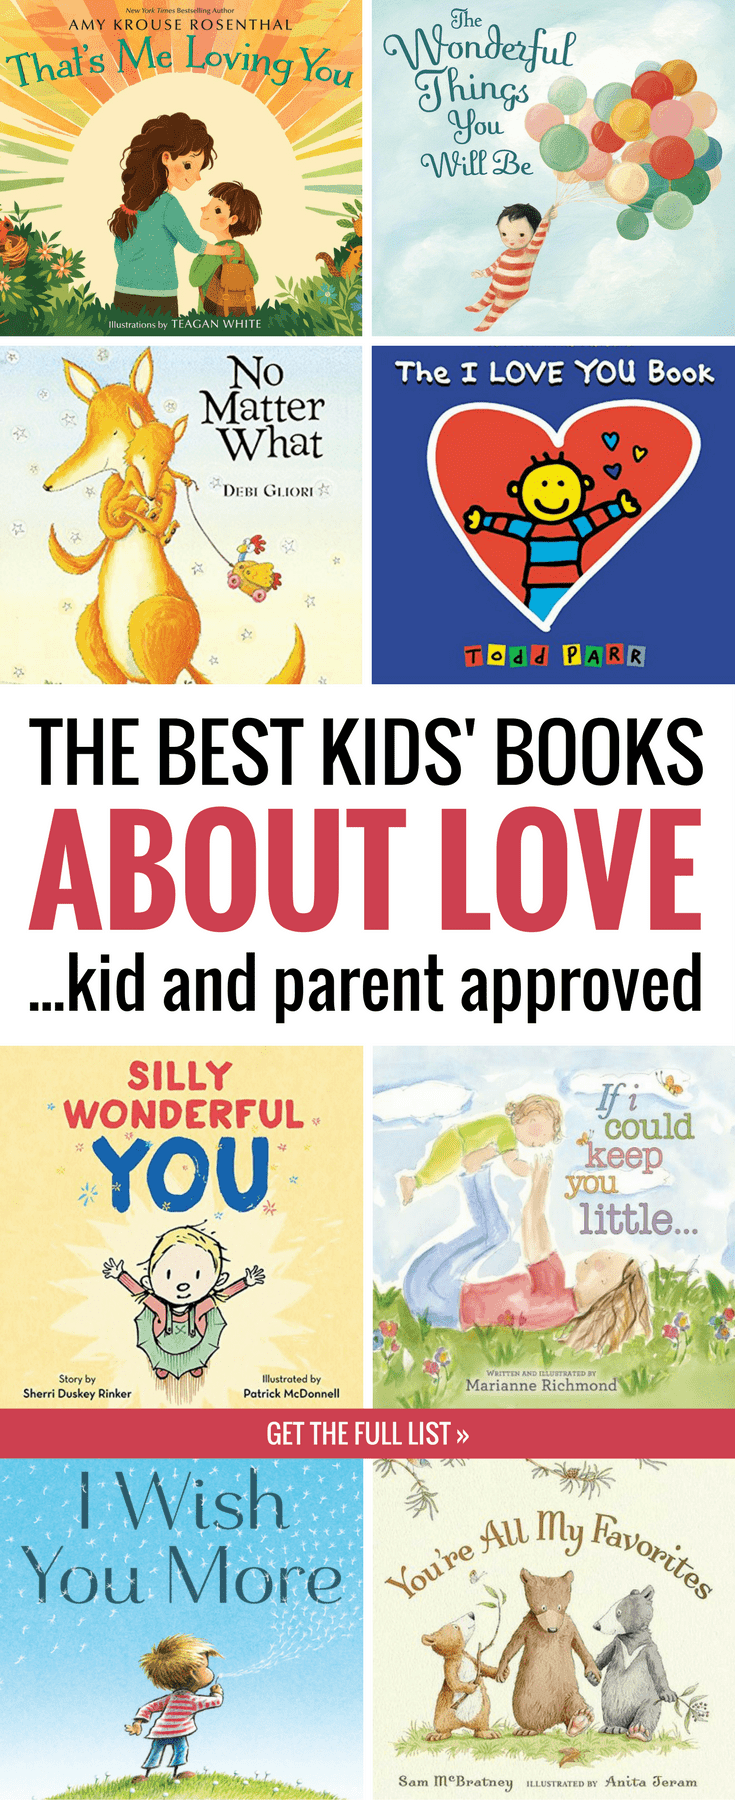 10 best picture books about love that will make your kids feel treasured